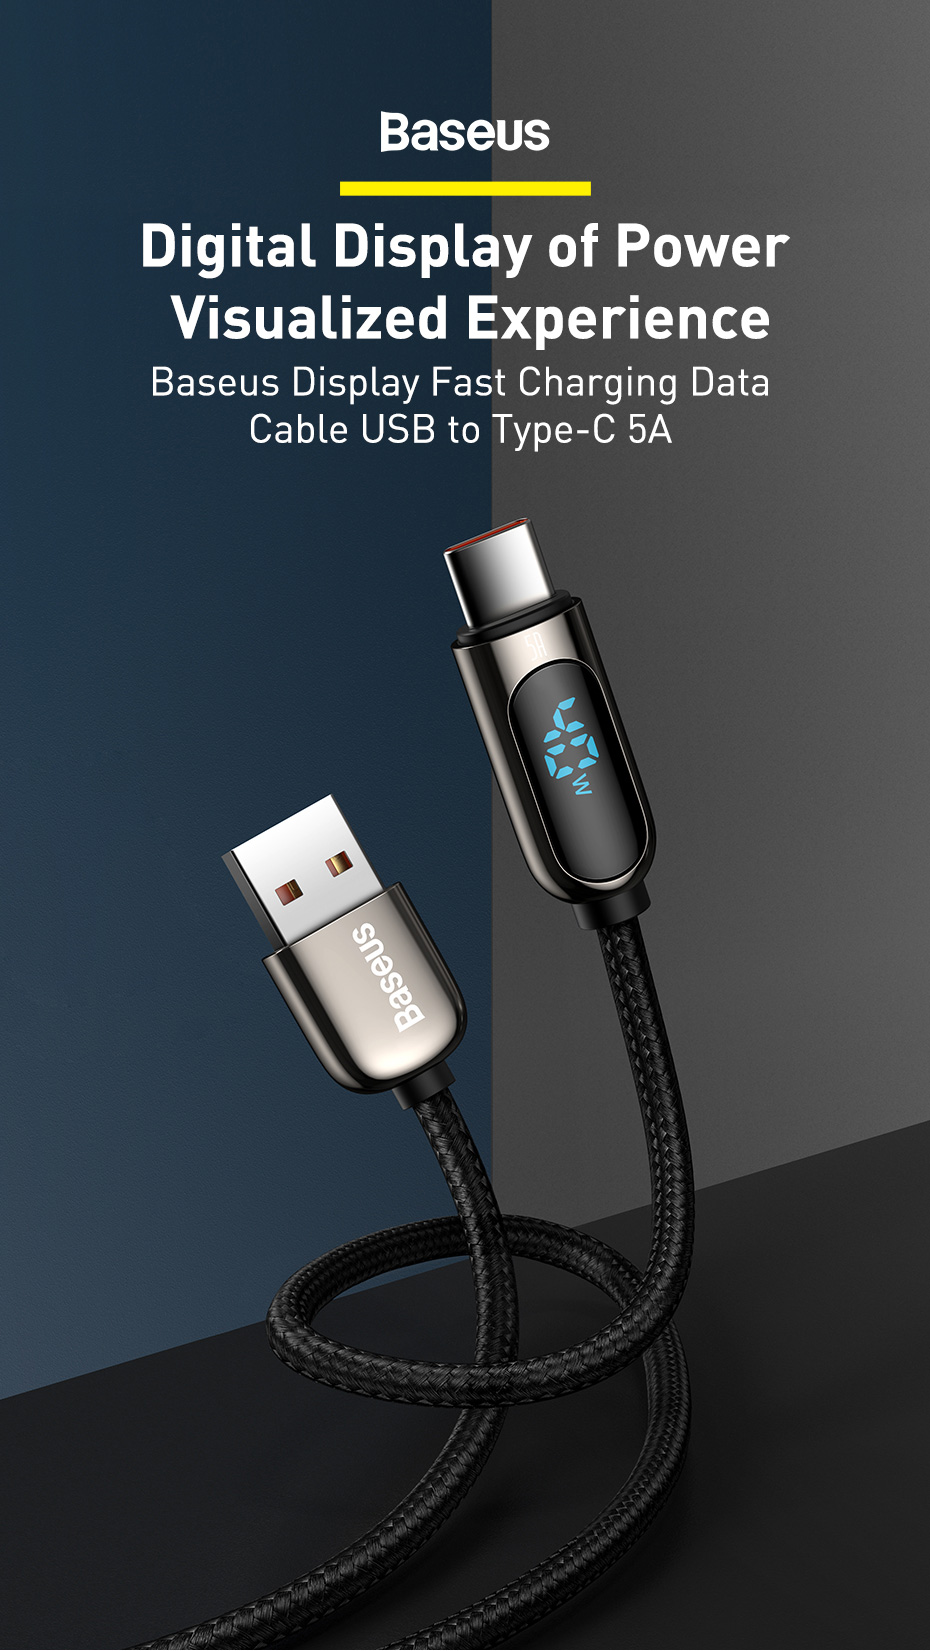 Baseus Display Fast Charging Data Cable USB to Type-C 4